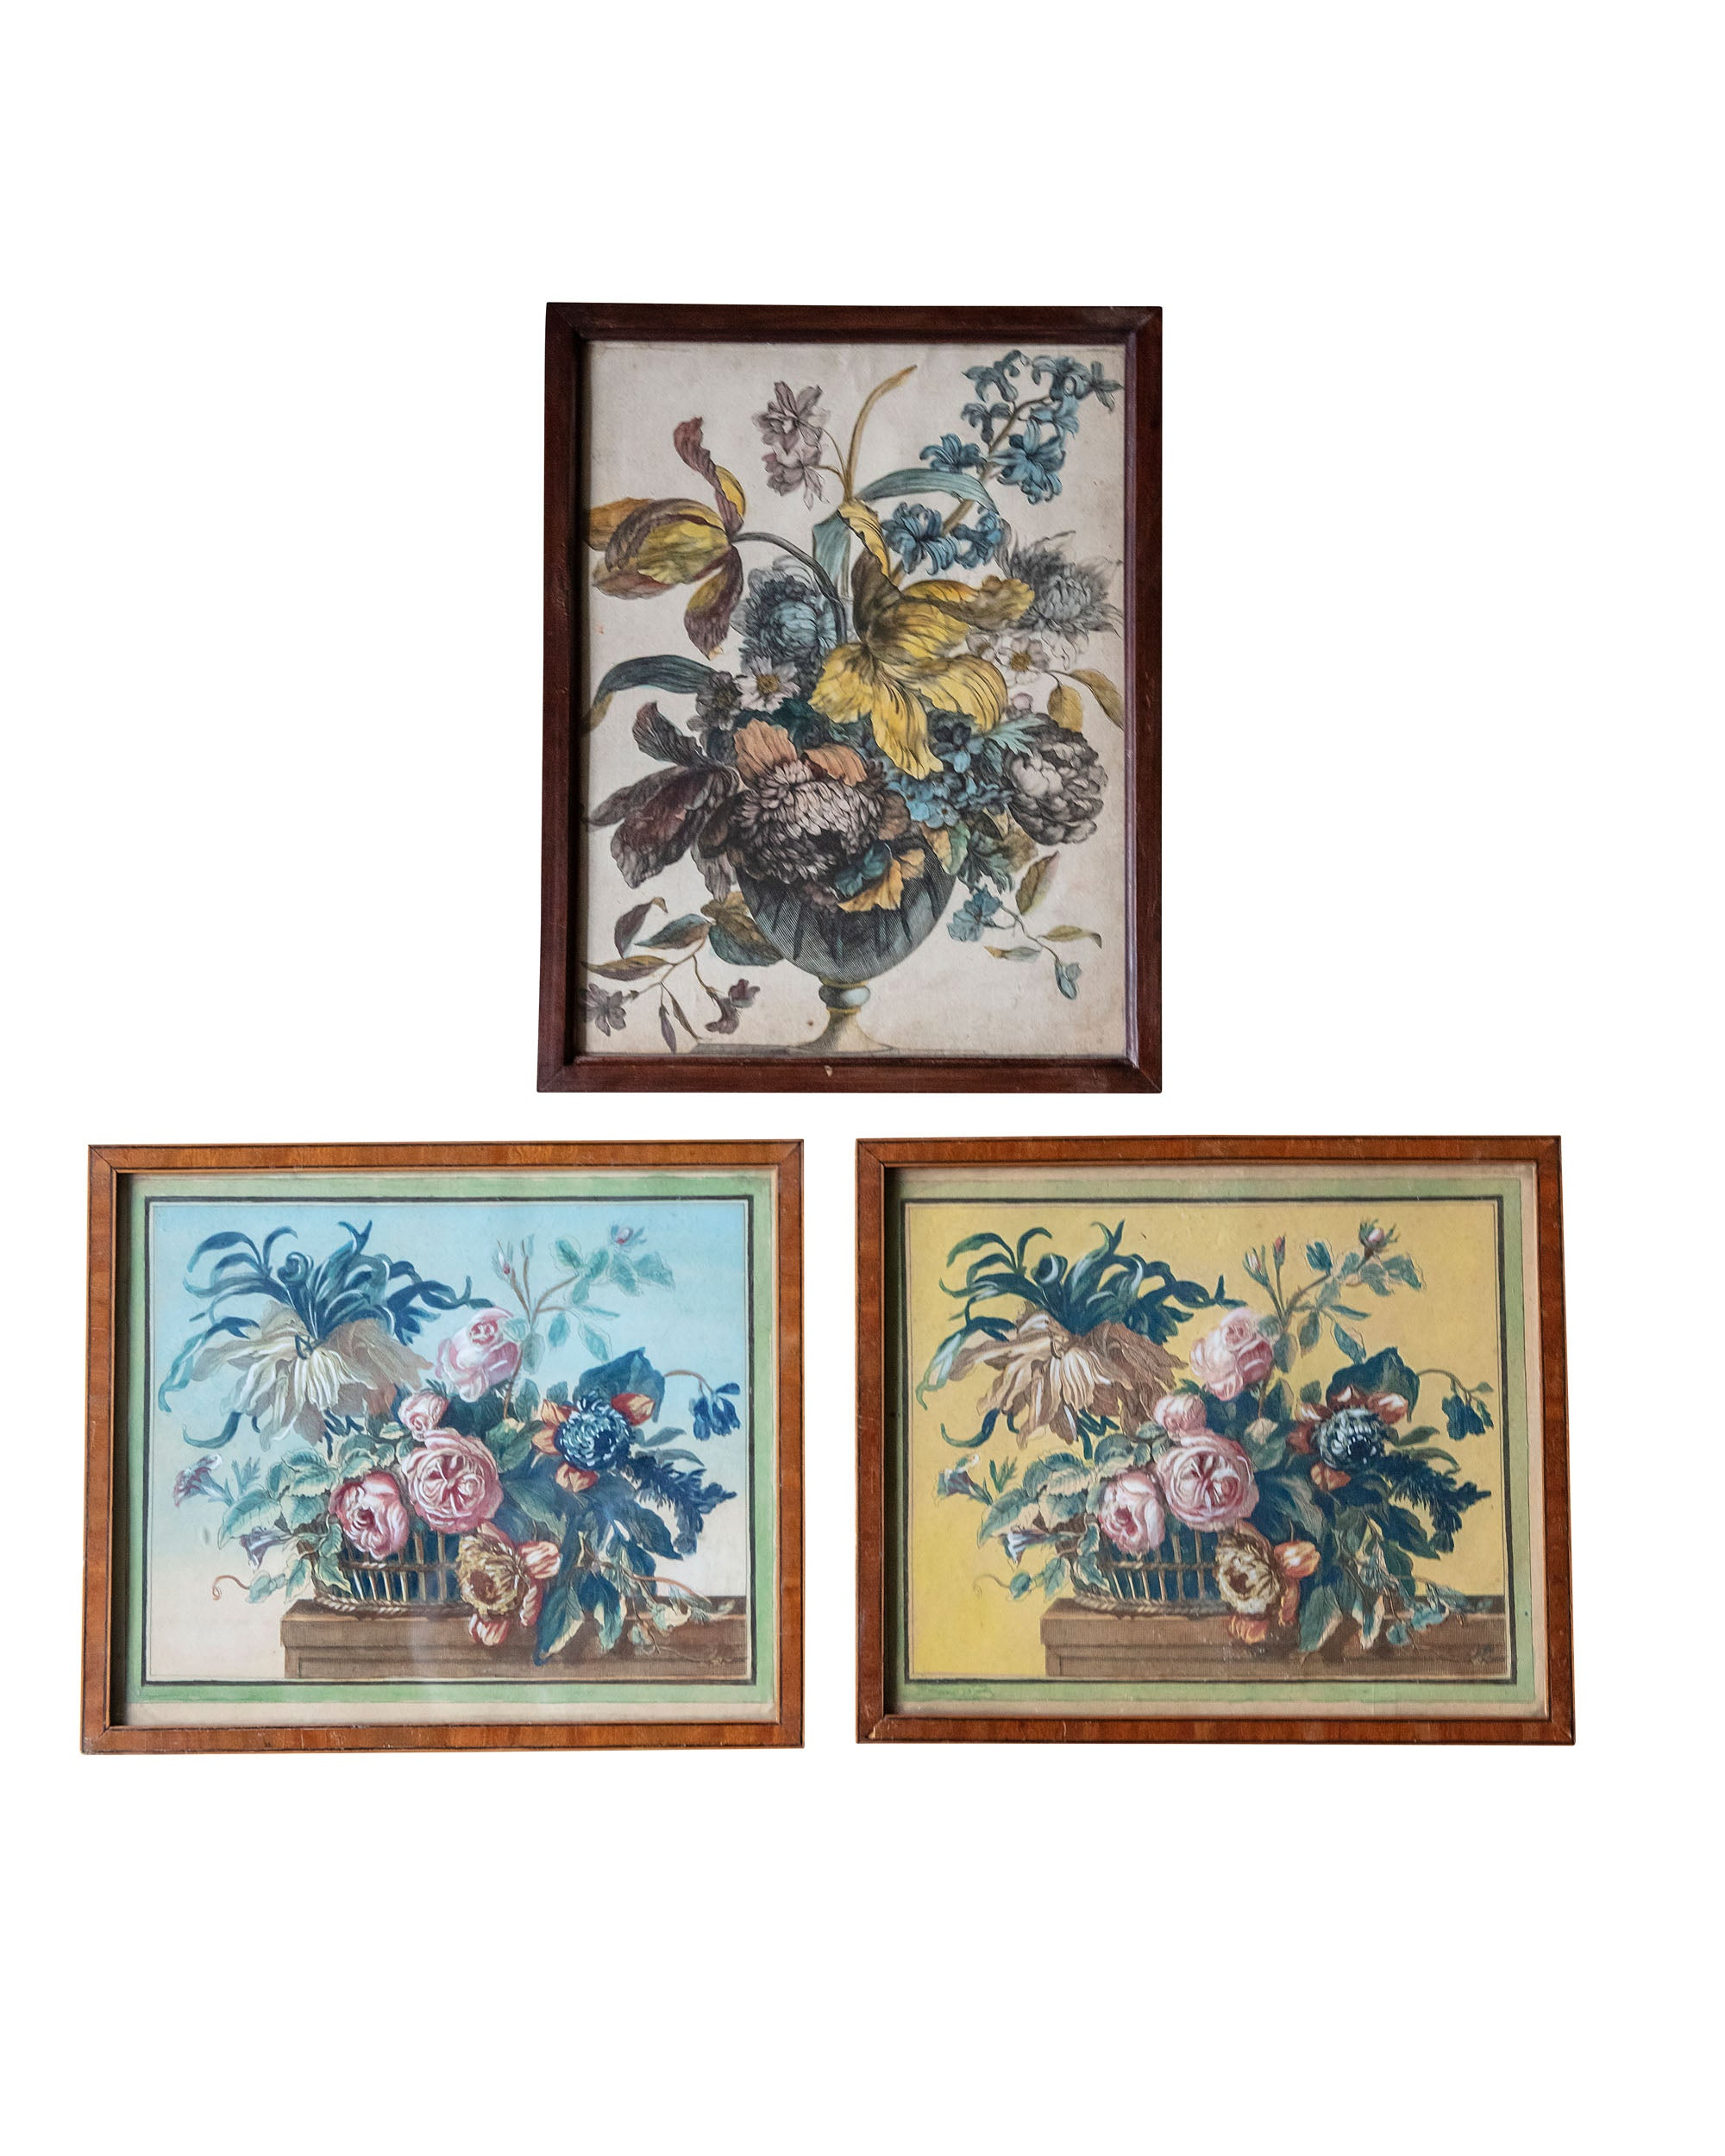 Set of three engravings depicting bouquets of flowers from the XVIIth century